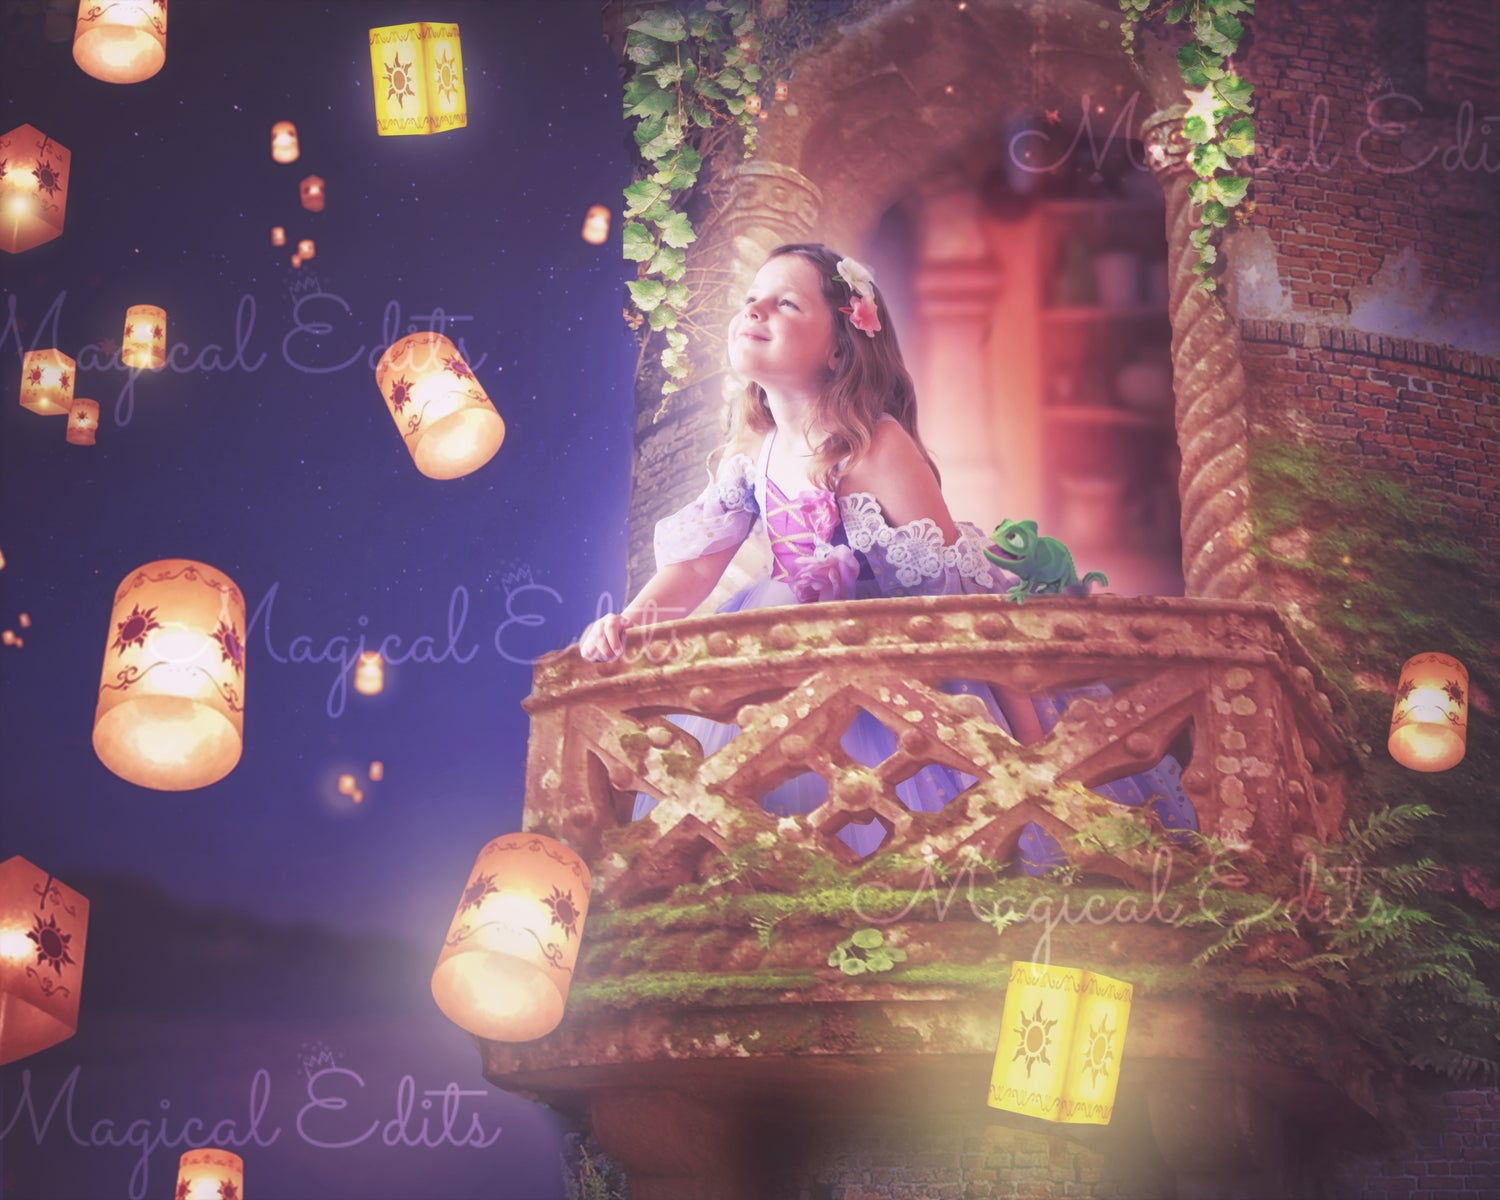 Image of See the Lights- Tangled Balcony Edit